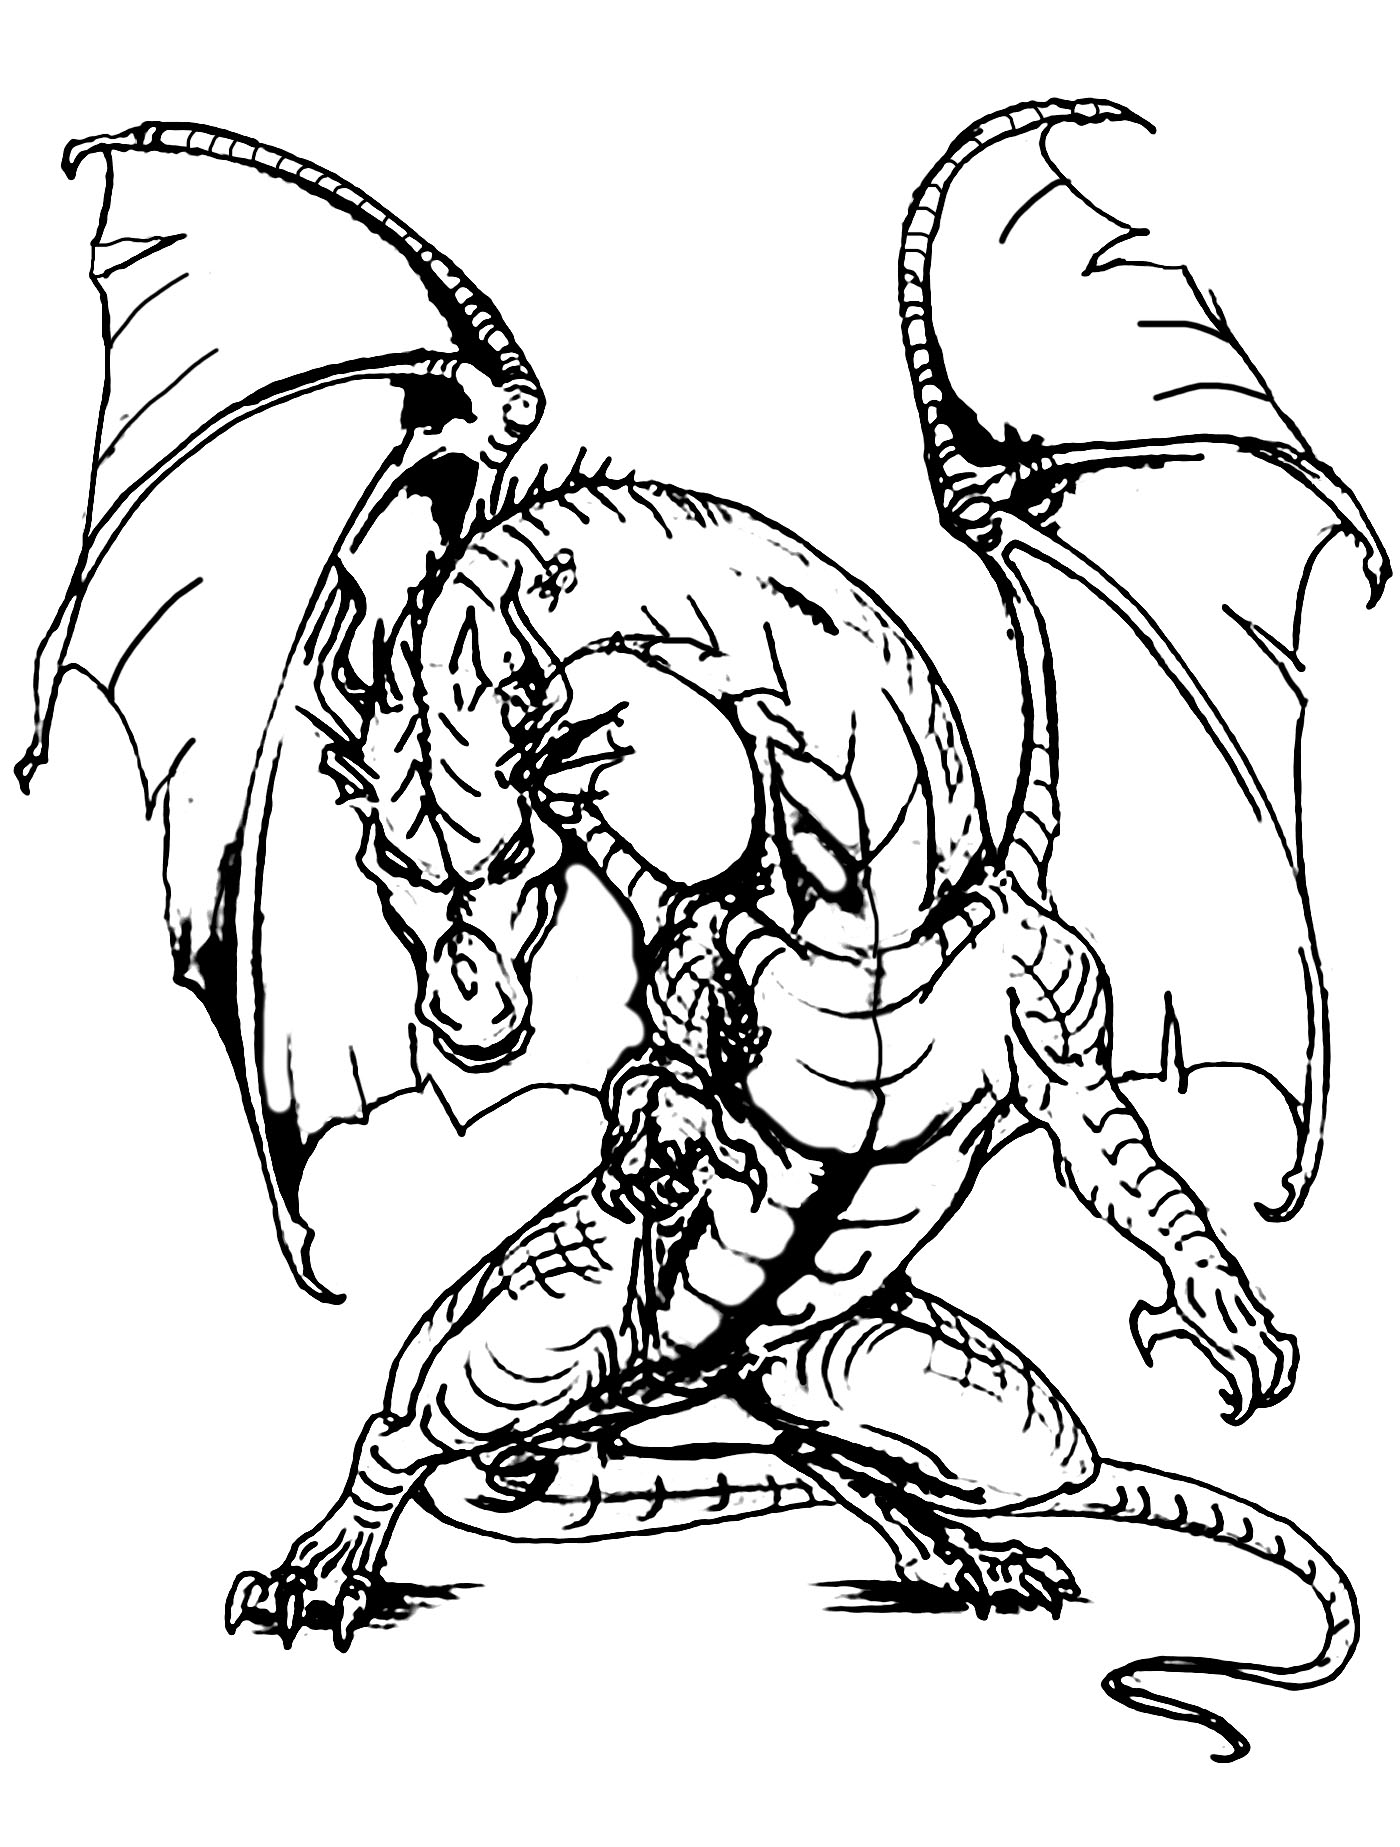 coloring pictures dragons printable dragon coloring pages for kids cool2bkids dragons coloring pictures